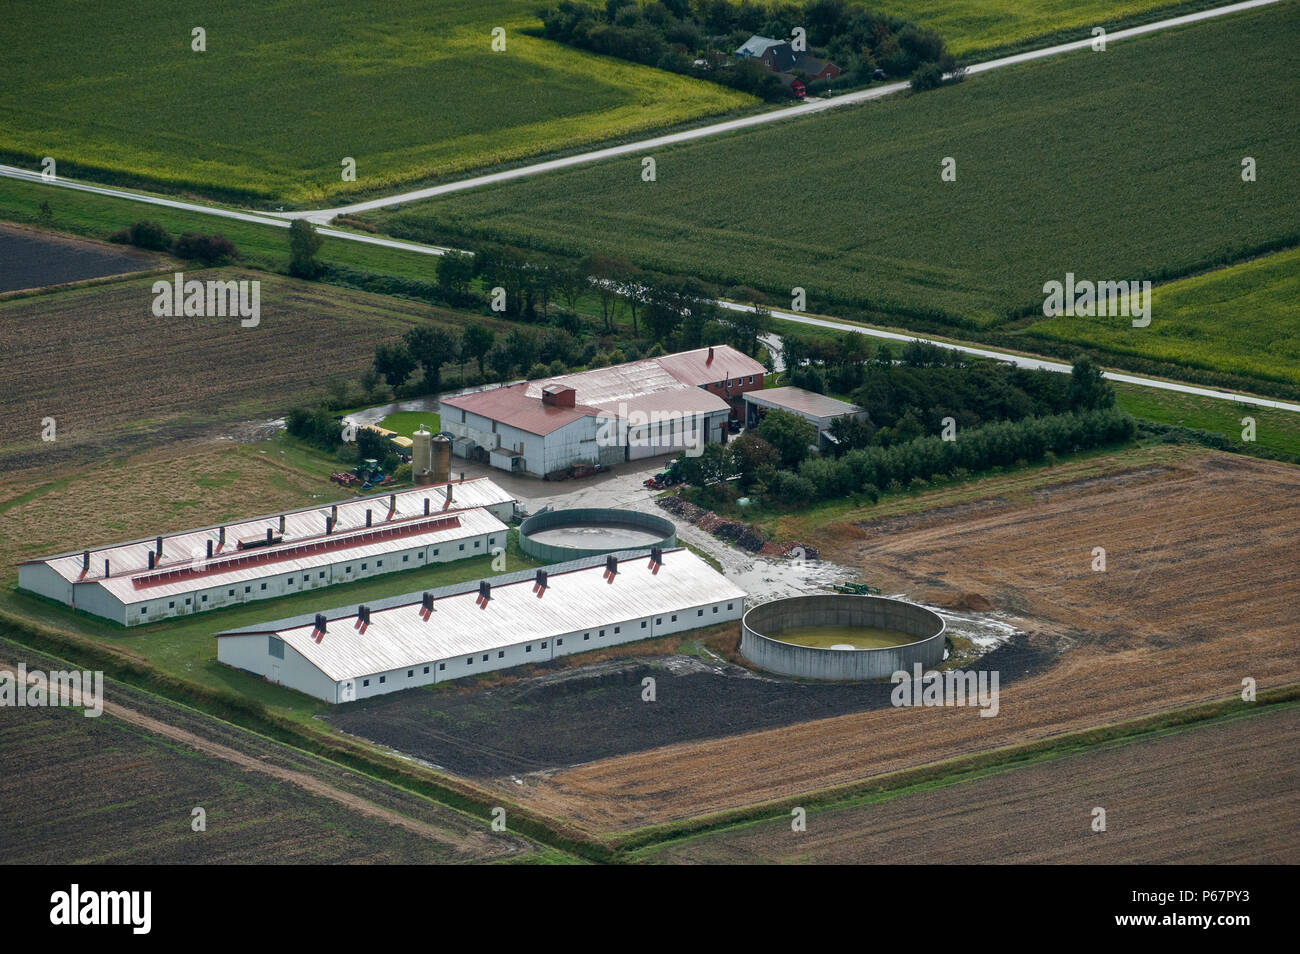 GERMANY aerial view of farm homestead with slurry tank and stable with solar roof in Northern Germany - Stock Image